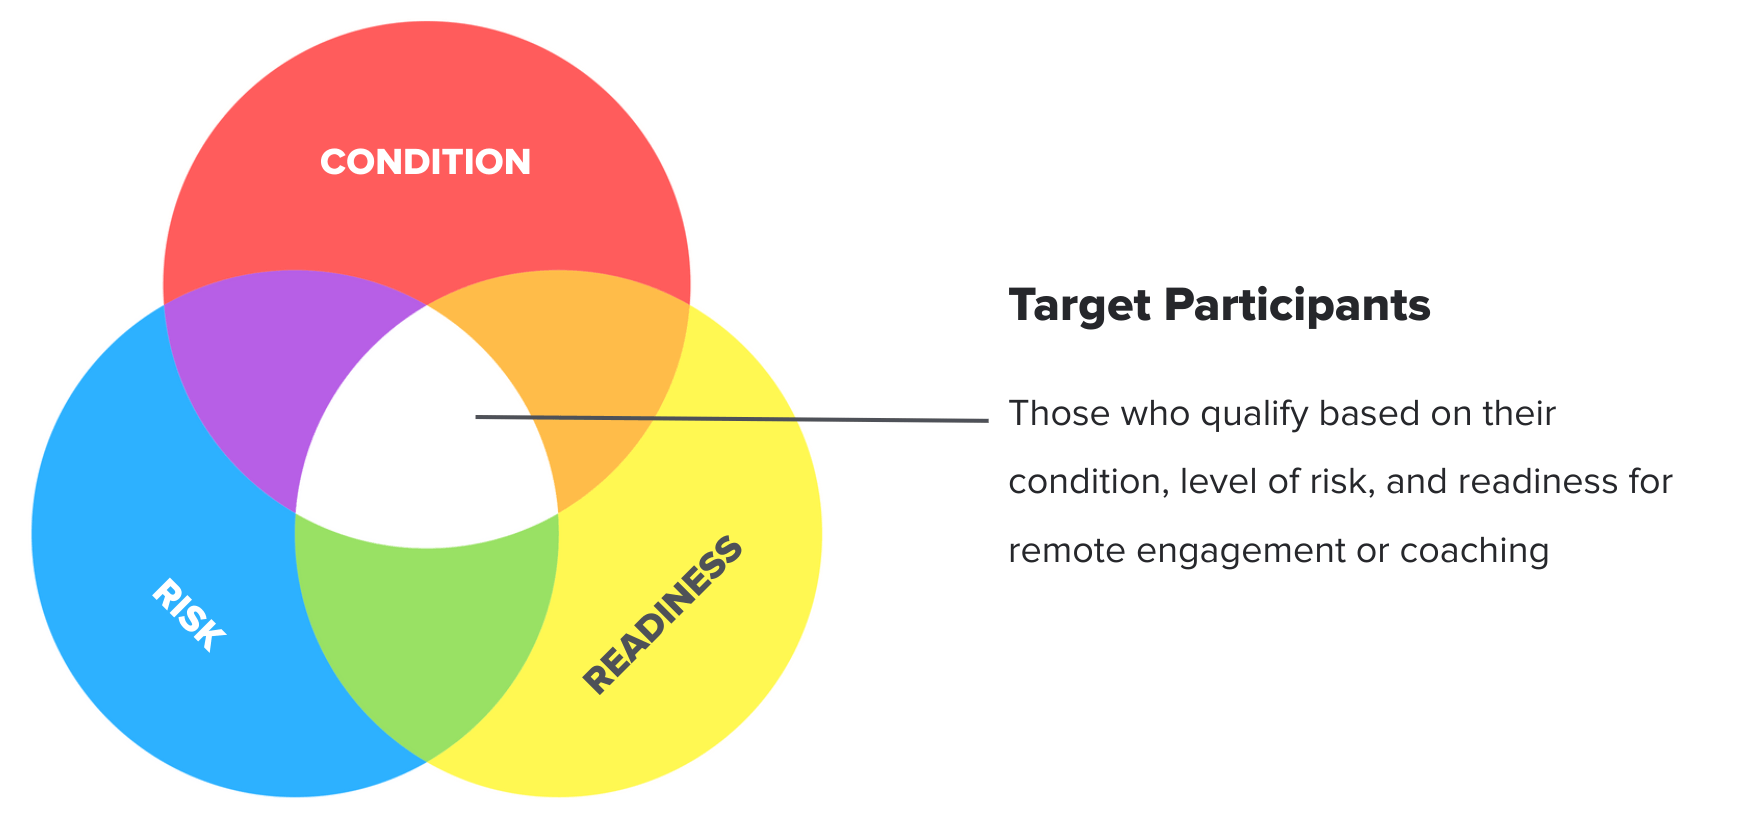 Qualify Remote Coaching Engagement Participants By Readiness for Change